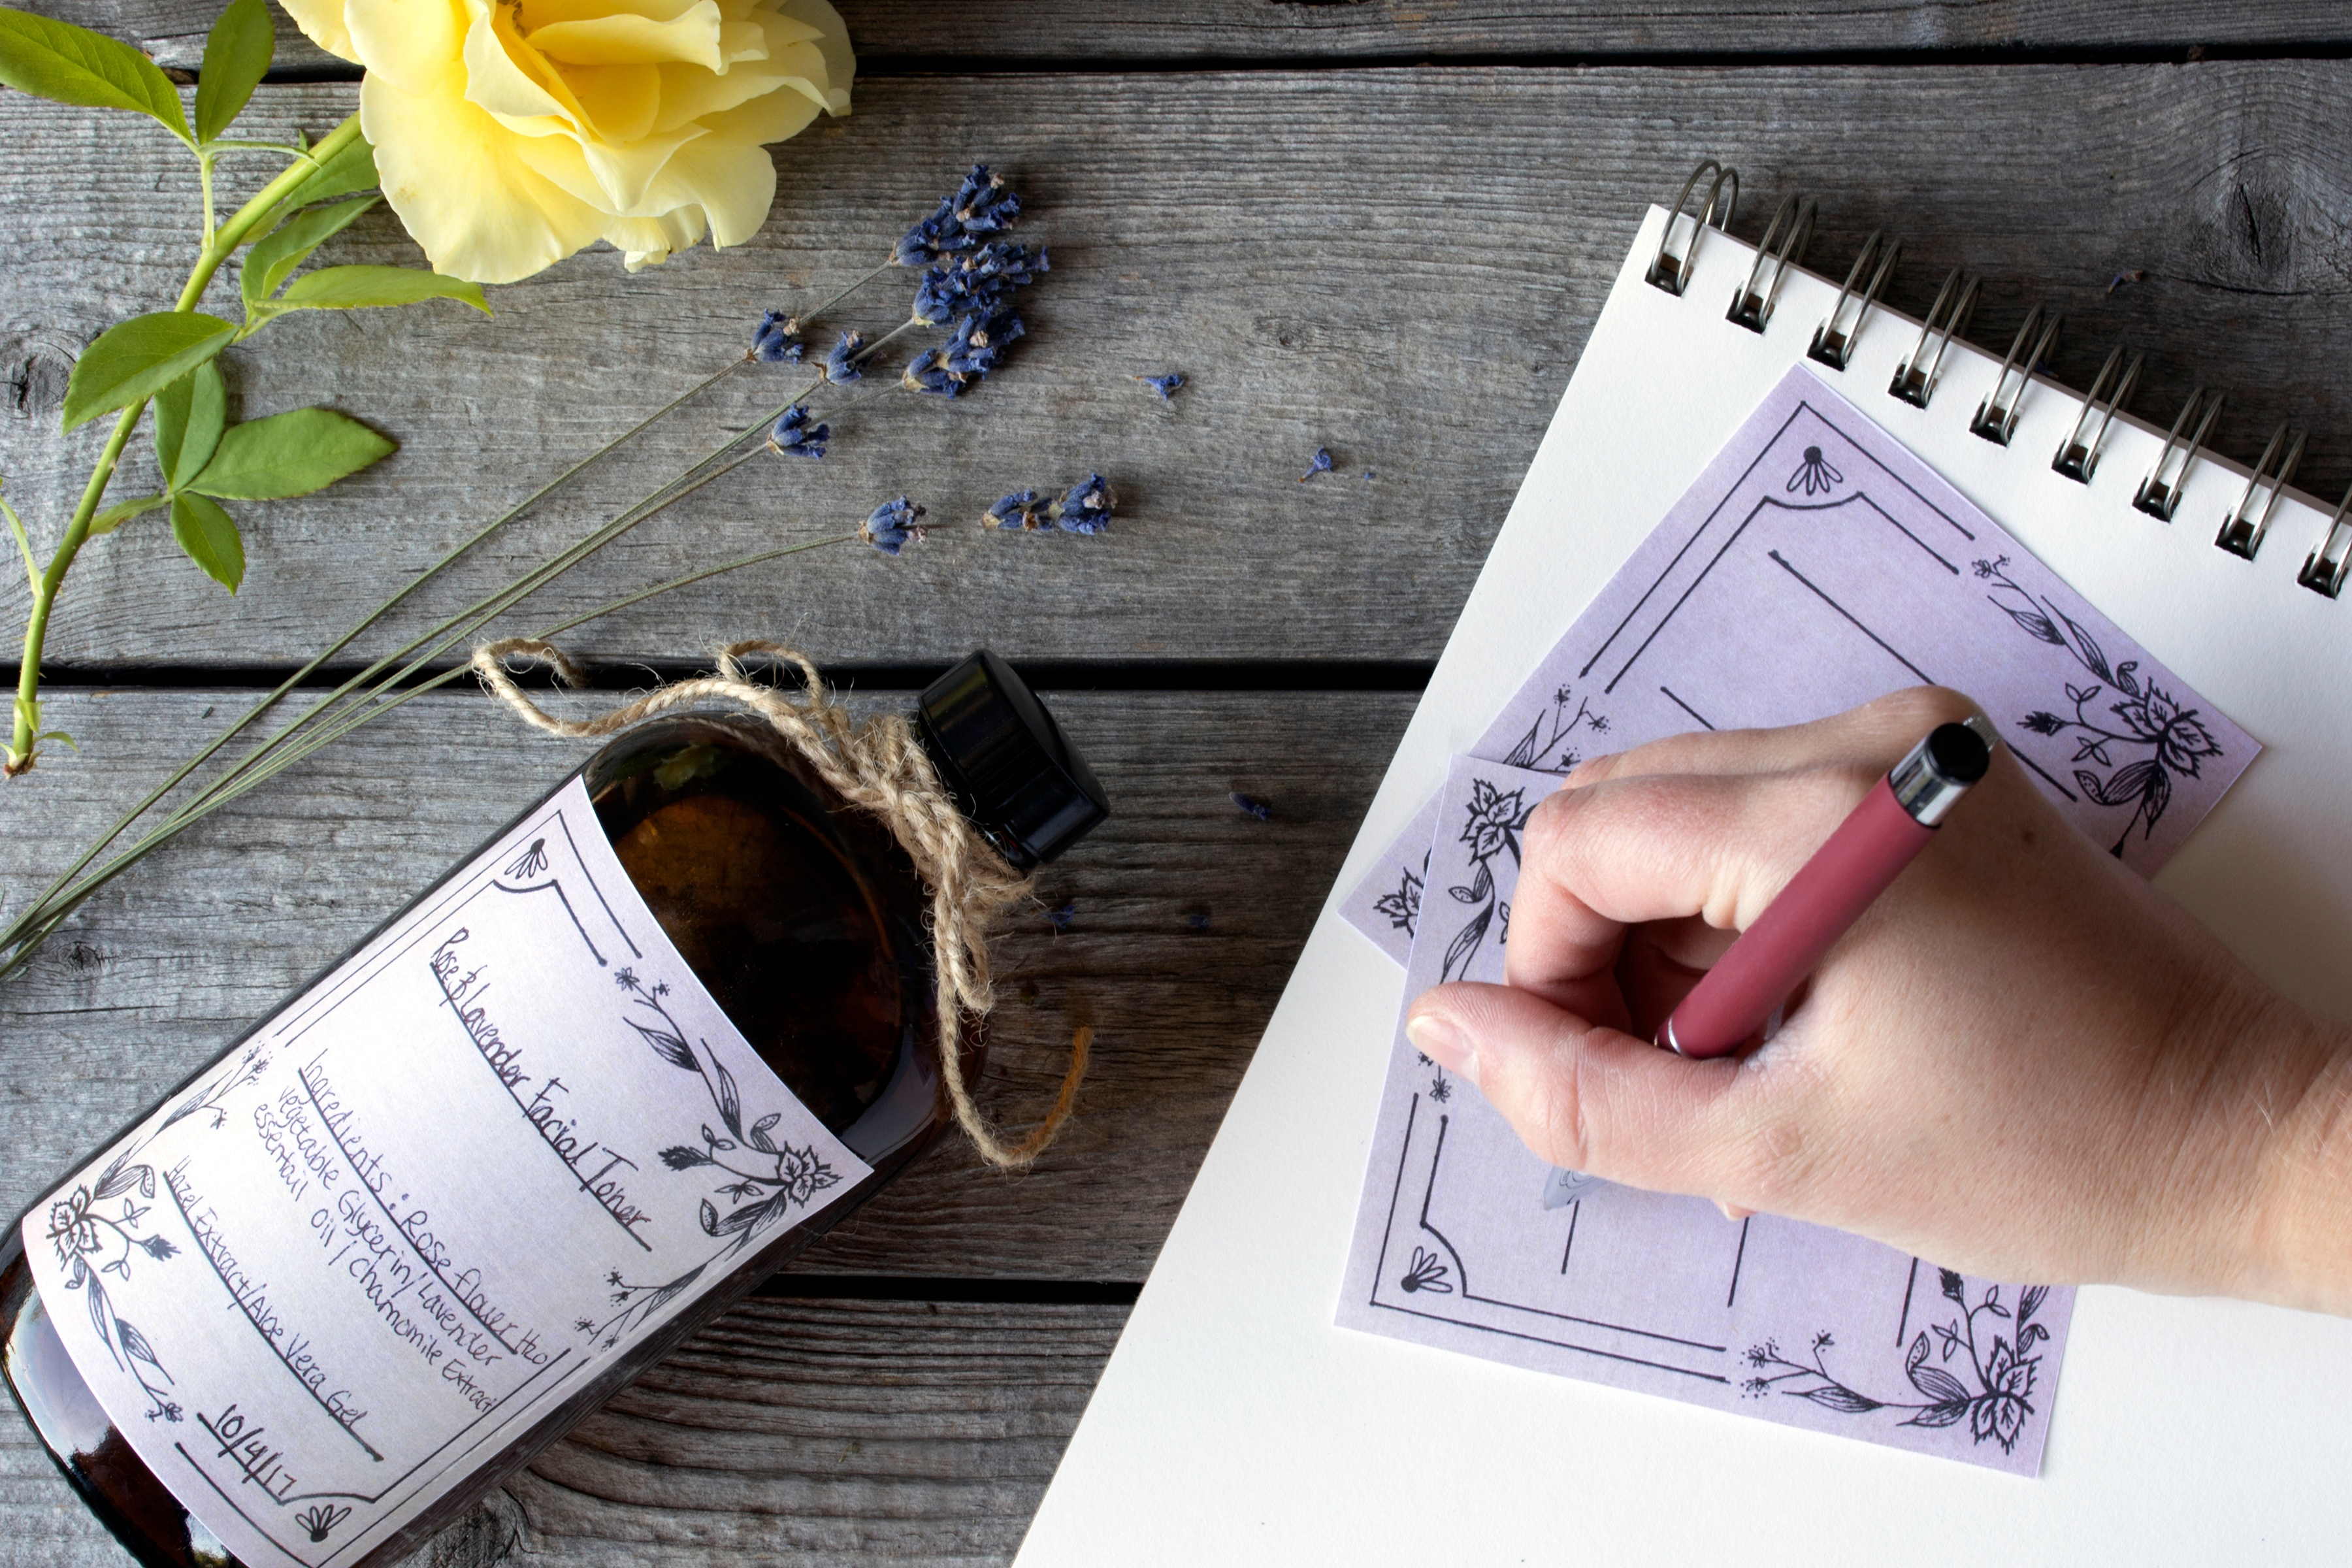 Person handwriting on a printed label with a yellow rose and lavender flowers on a wooden table.